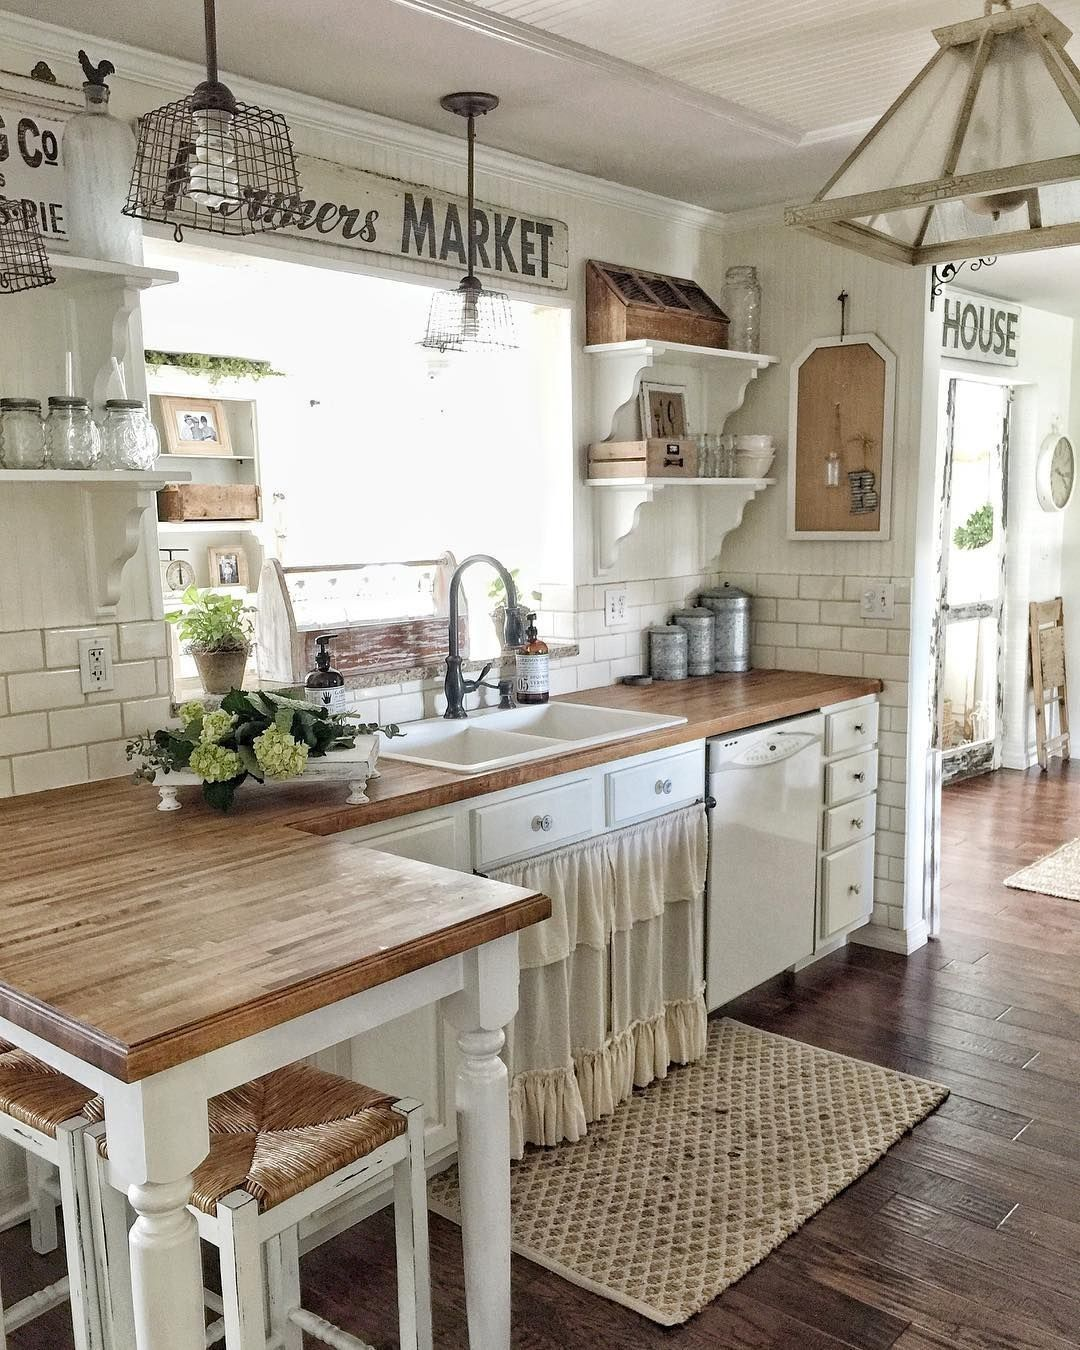 10+ COUNTRY KITCHEN DESIGN MEANING TO REMODEL YOUR KITCHEN